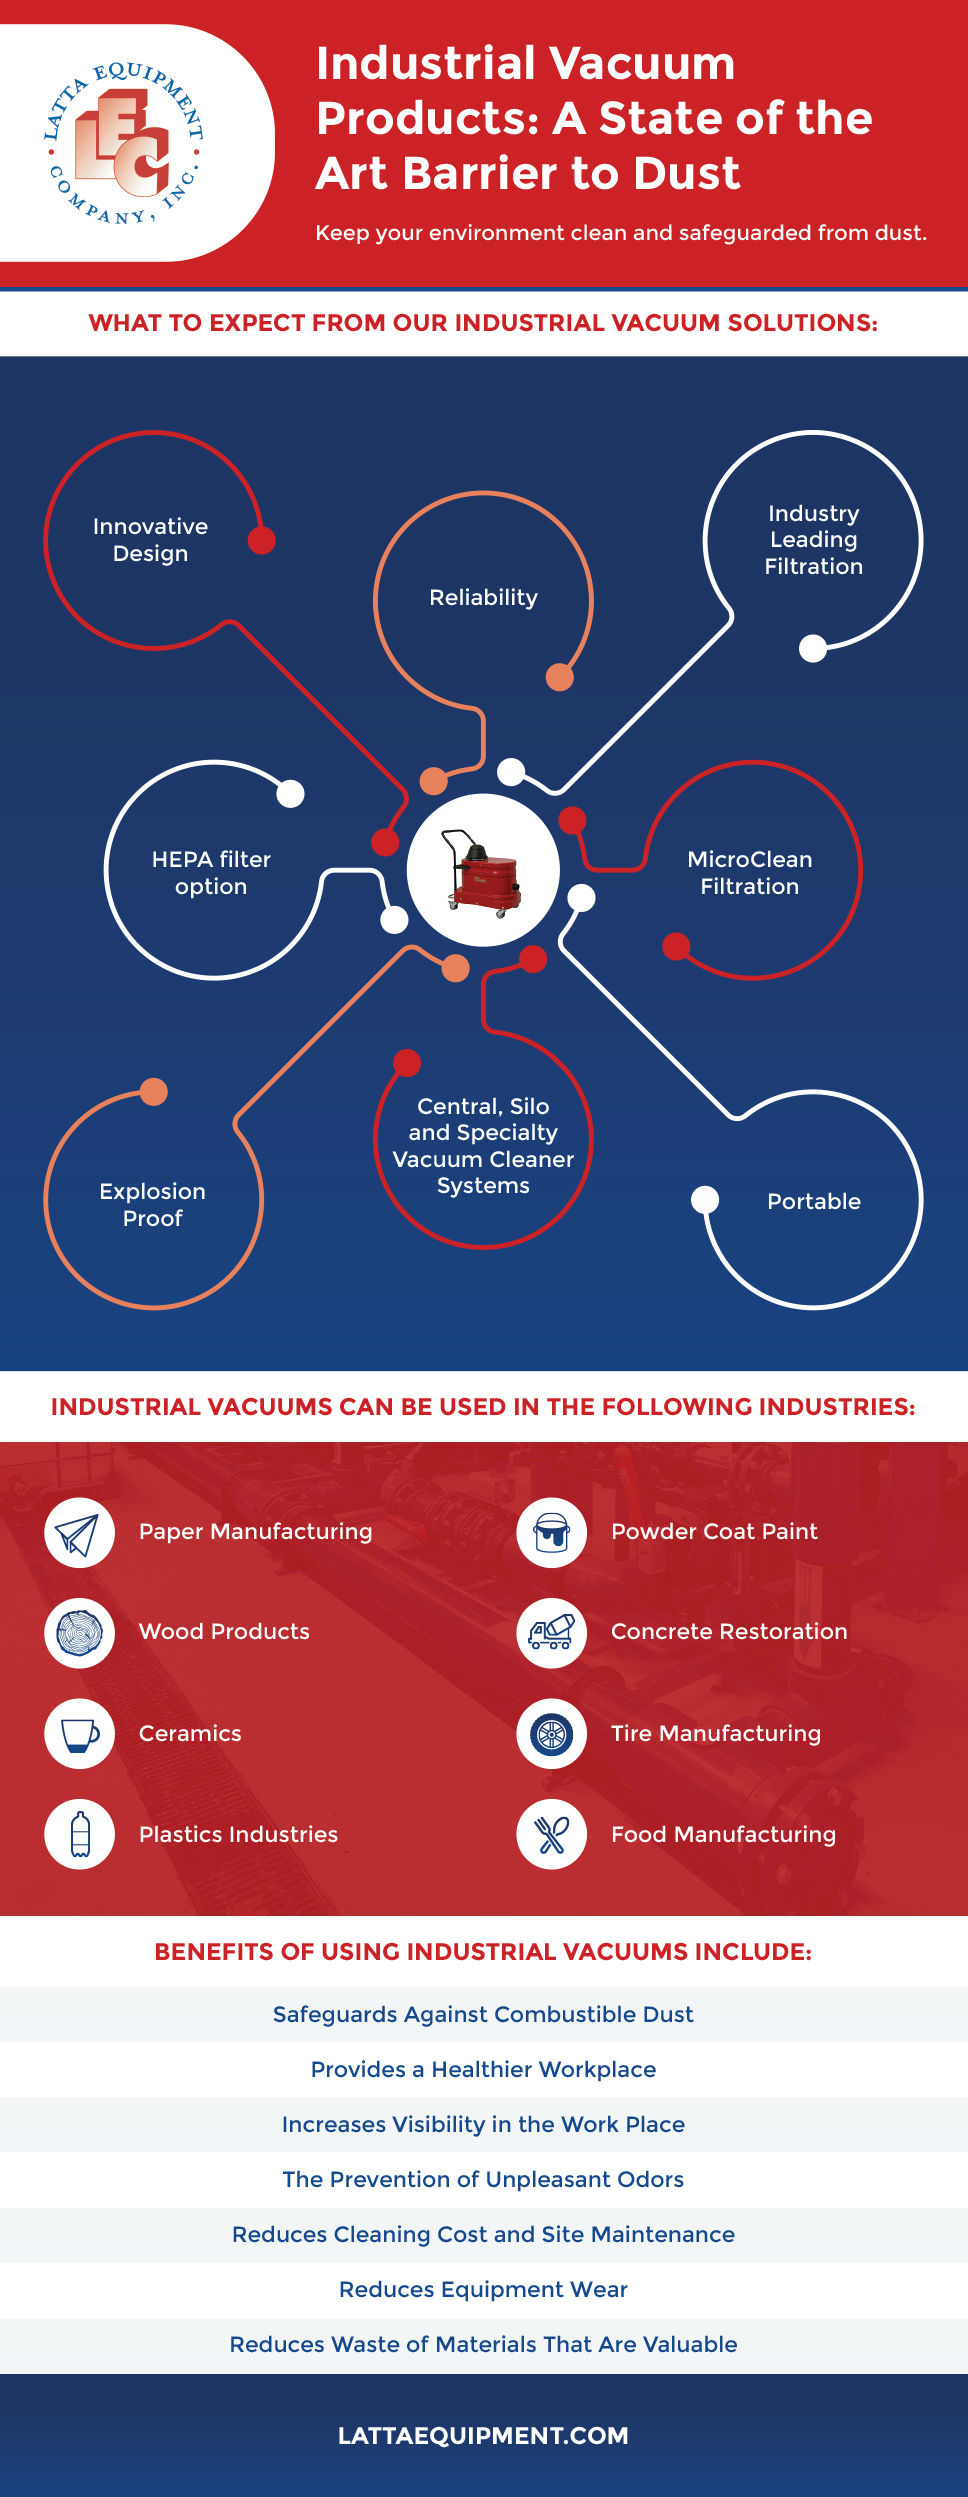 Industrial Vacuum Products: A State of the Art Barrier to Dust